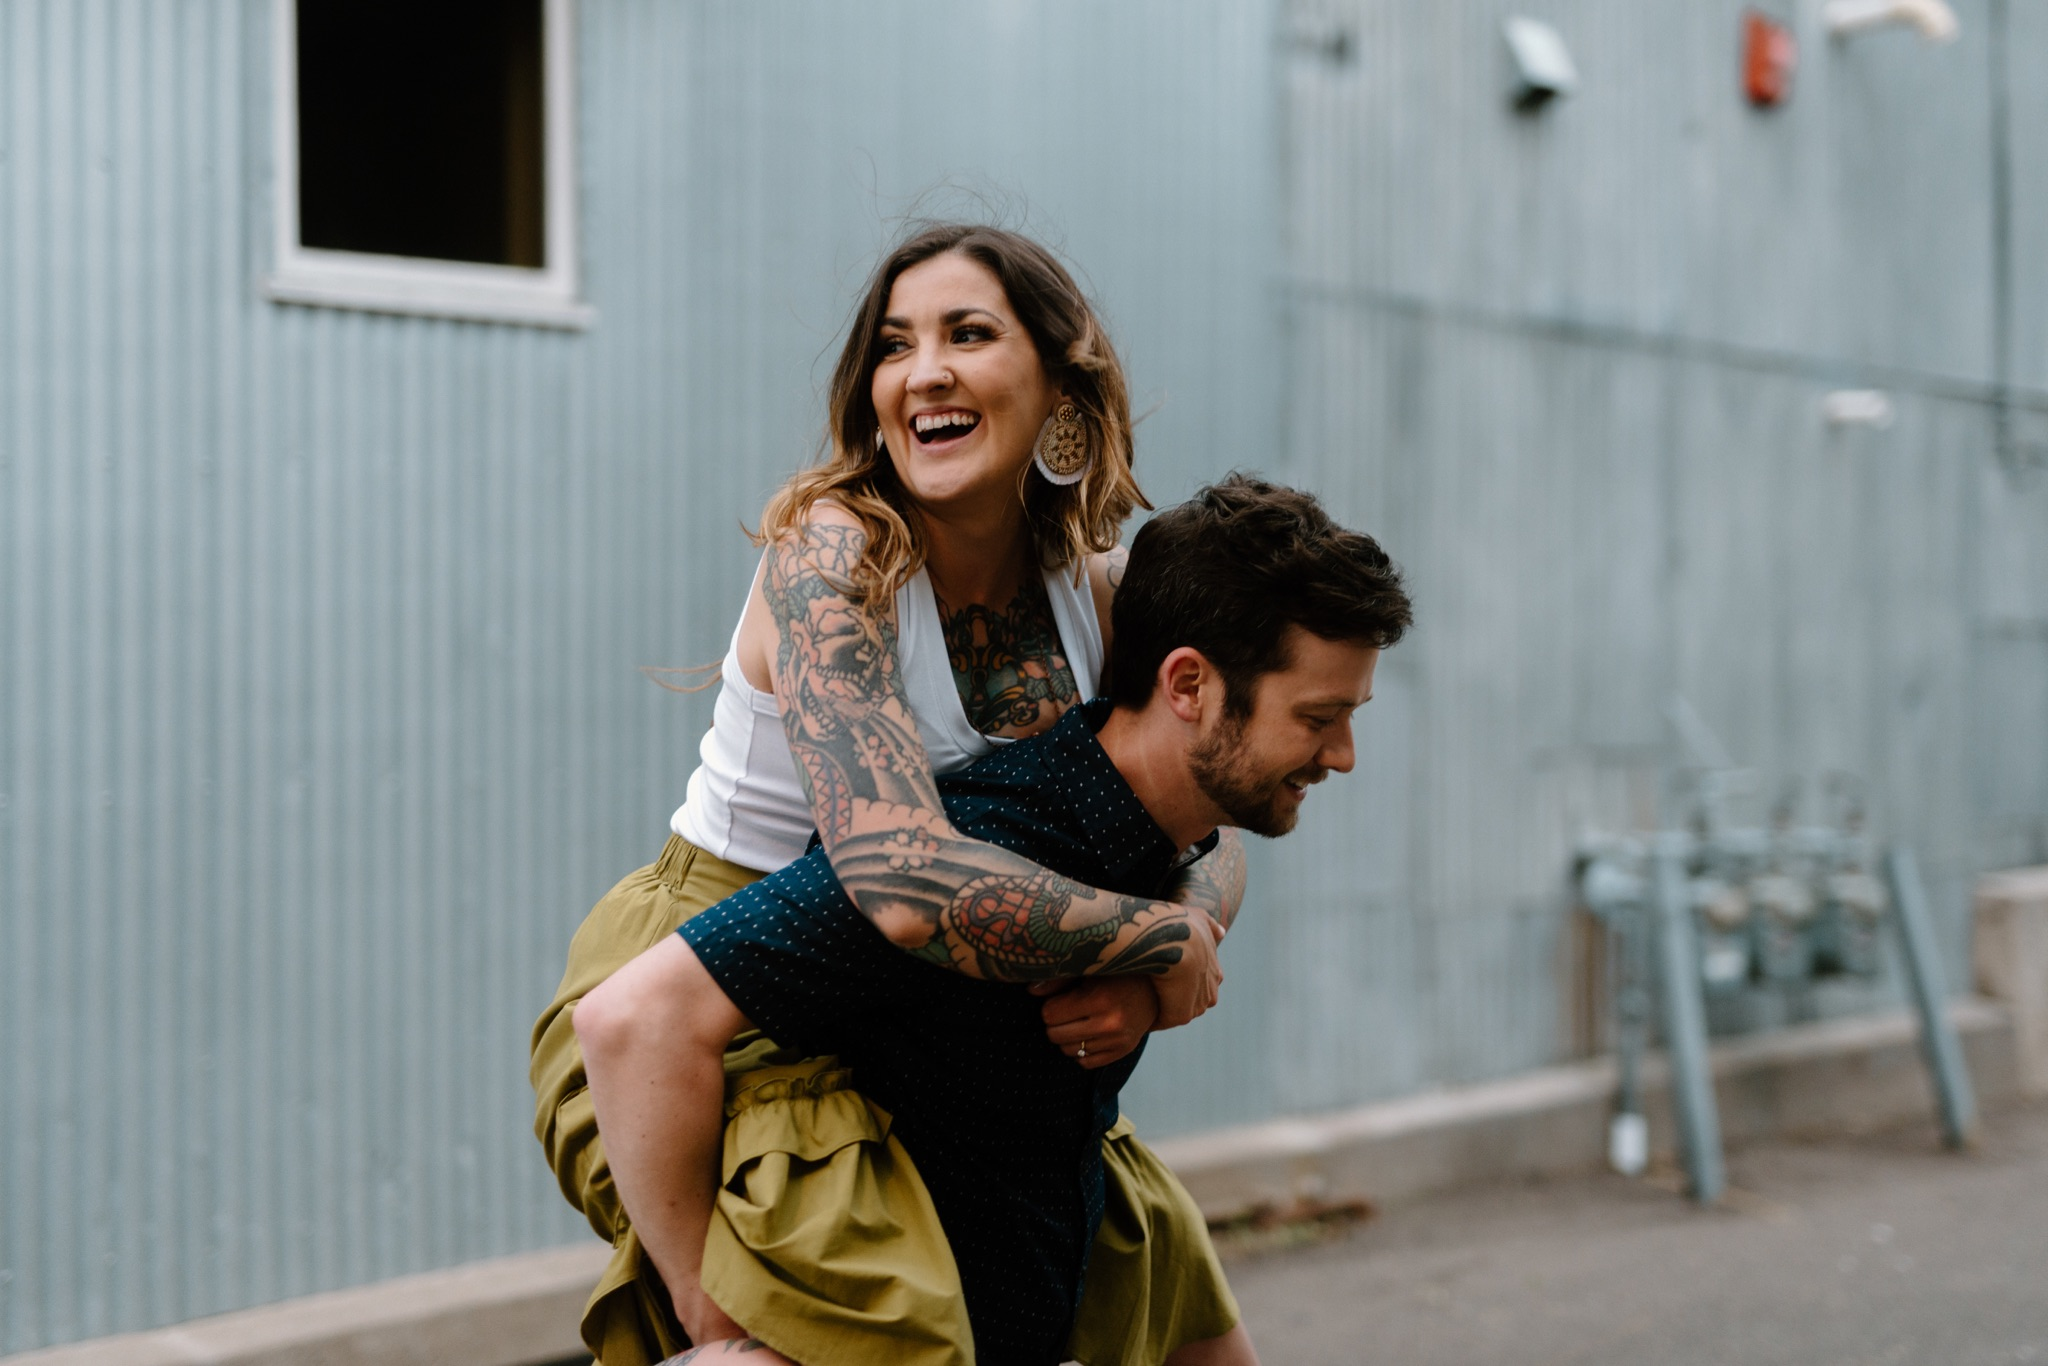 man giving woman a piggyback ride and laughing